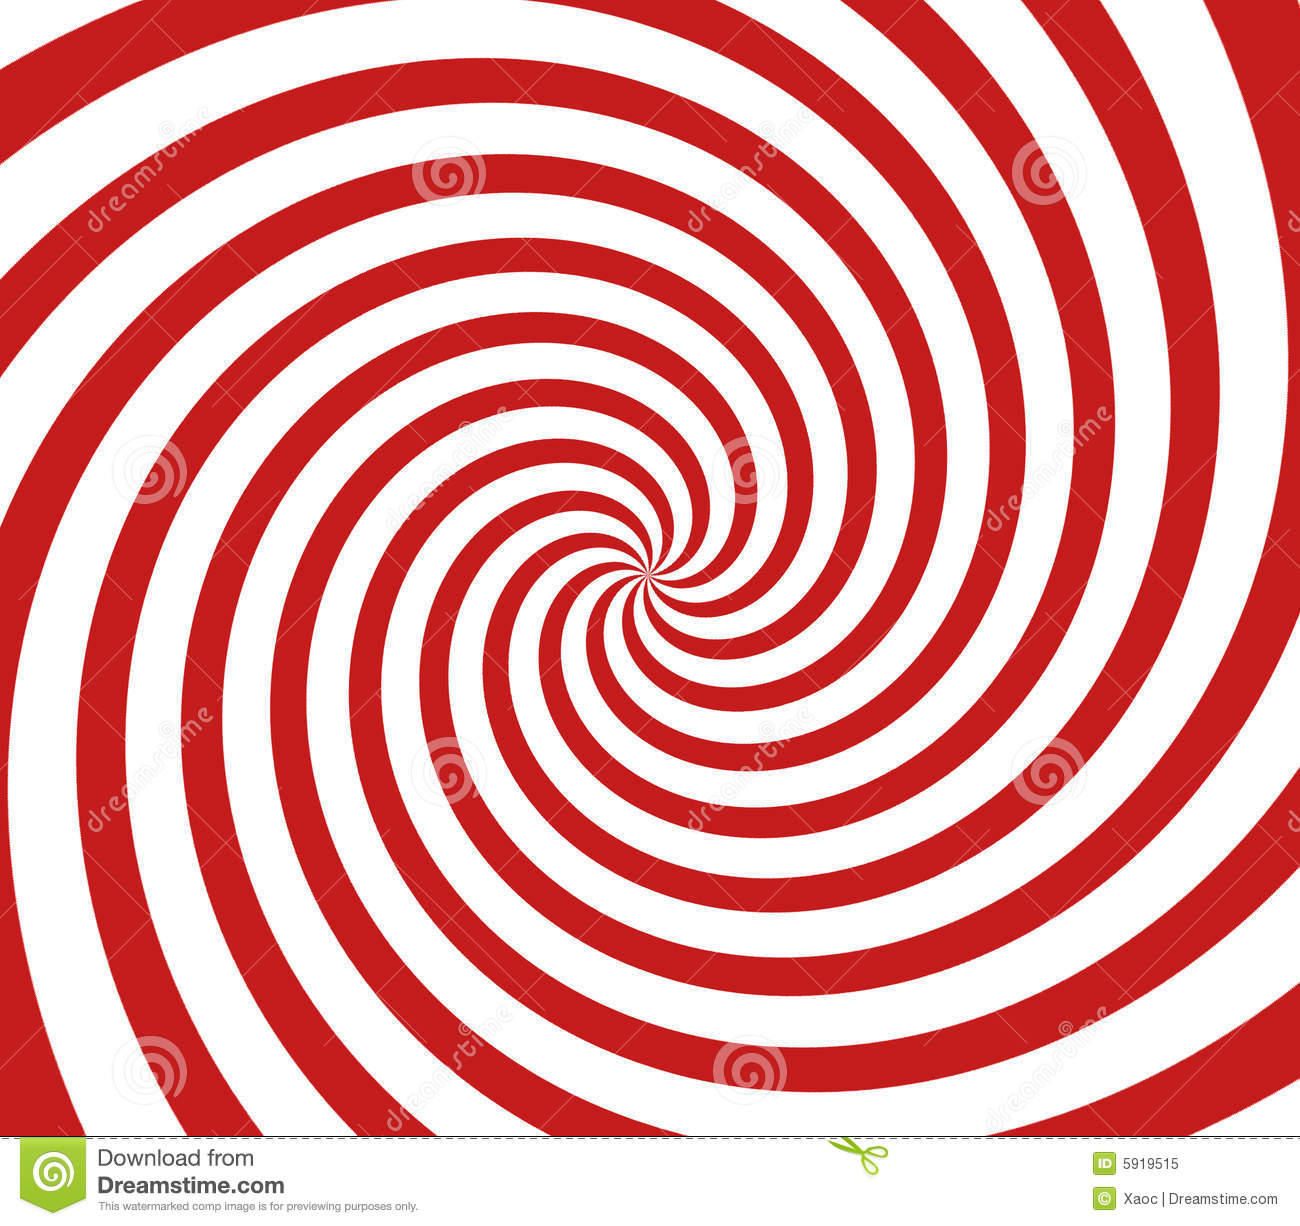 Red And White Spiral Royalty Free Stock Photo - Image: 5919515